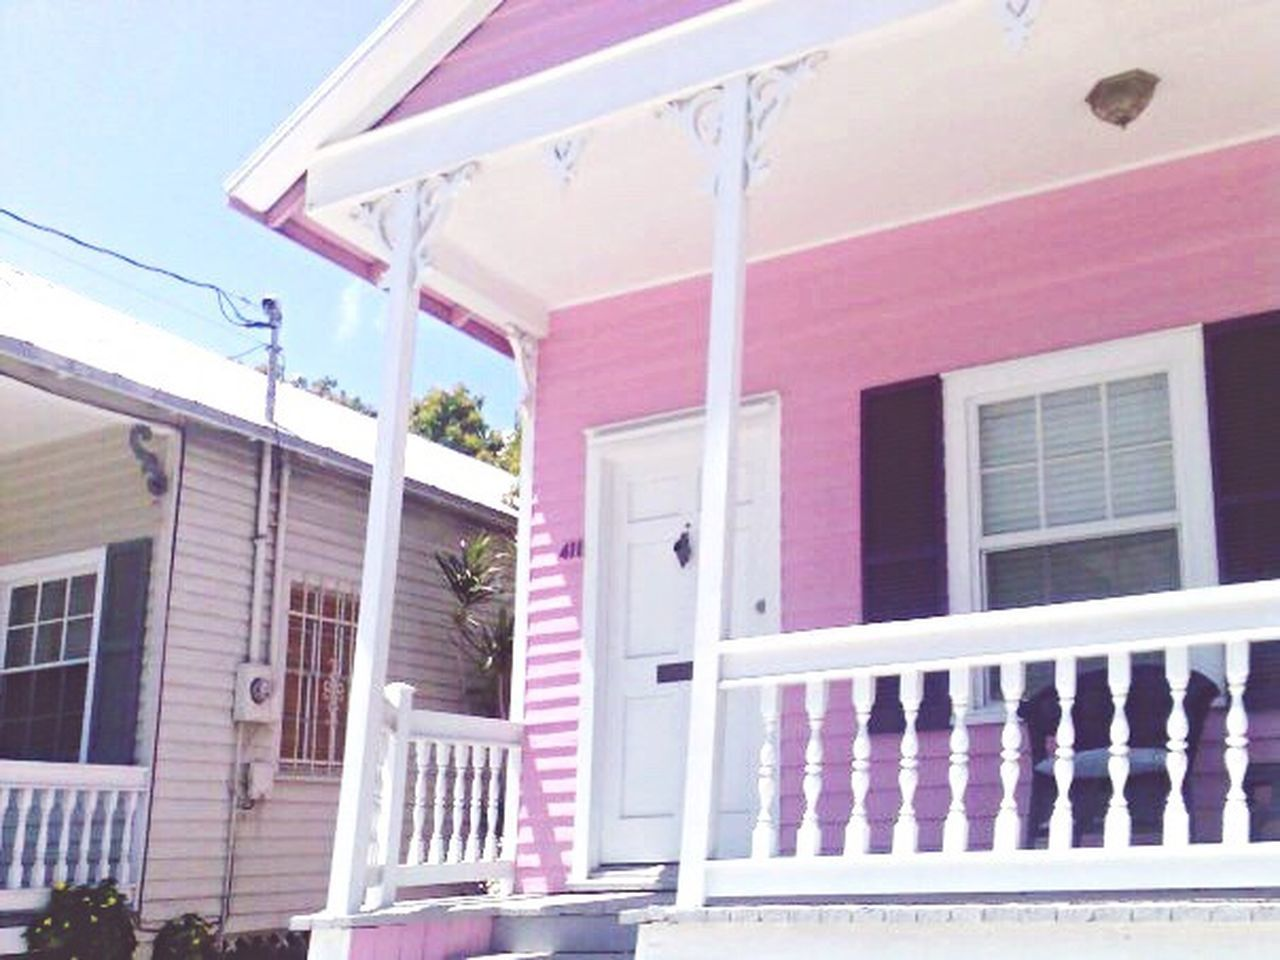 Keywest Florida Architecture Built Structure Building Exterior No People Outdoors Day Awning Tranquil Scene USA Popular Photos Walking Around Taking Photos Getting Inspired Pink Color Pinkish Sky